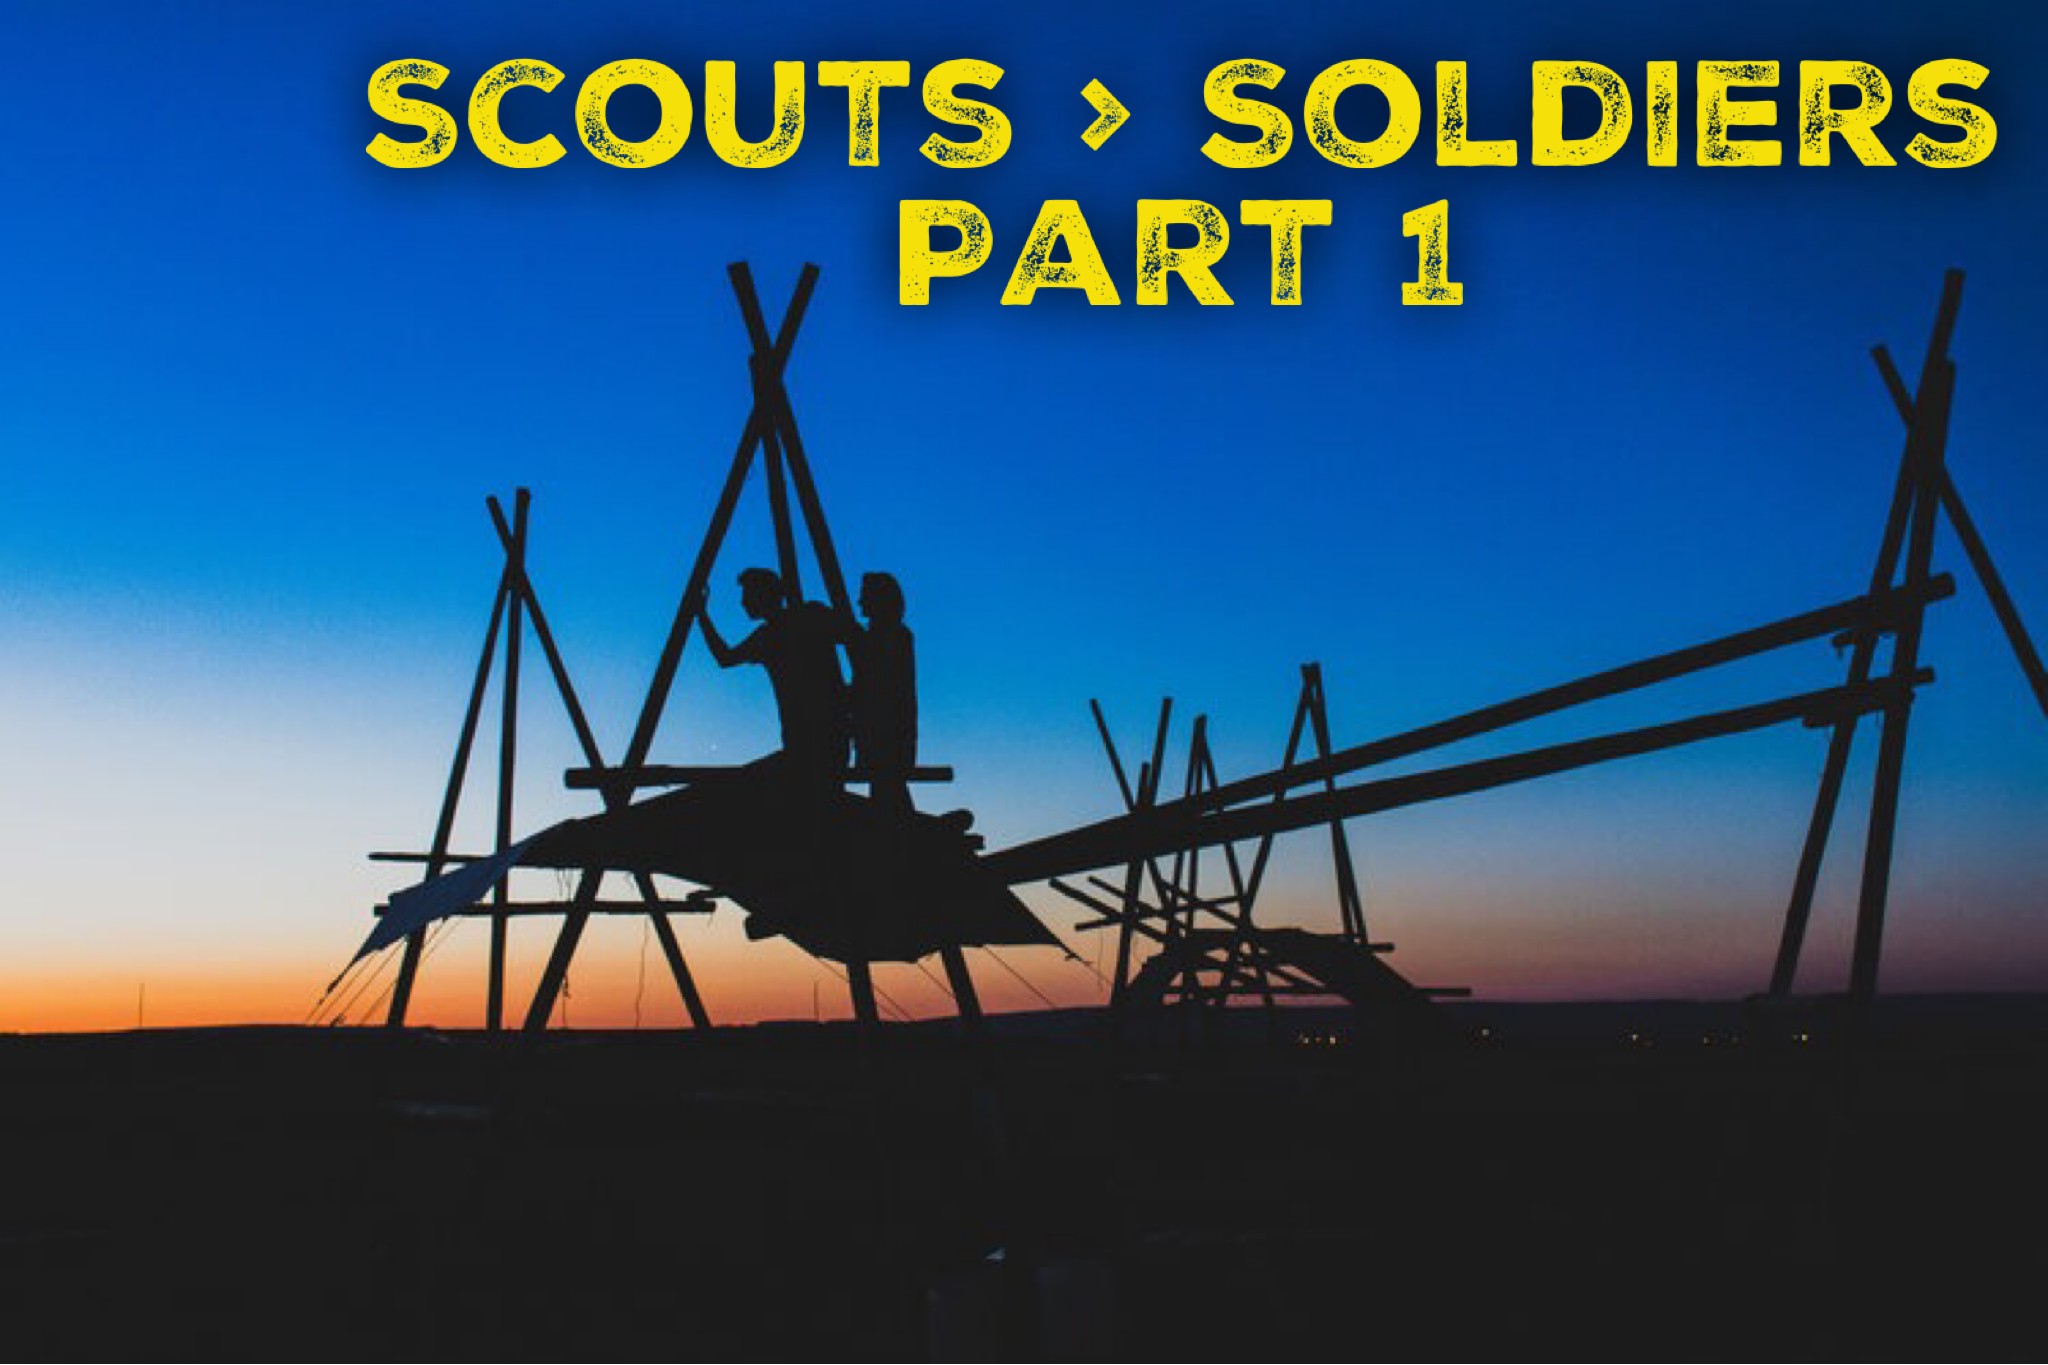 Scouts > Soldiers, Part 1